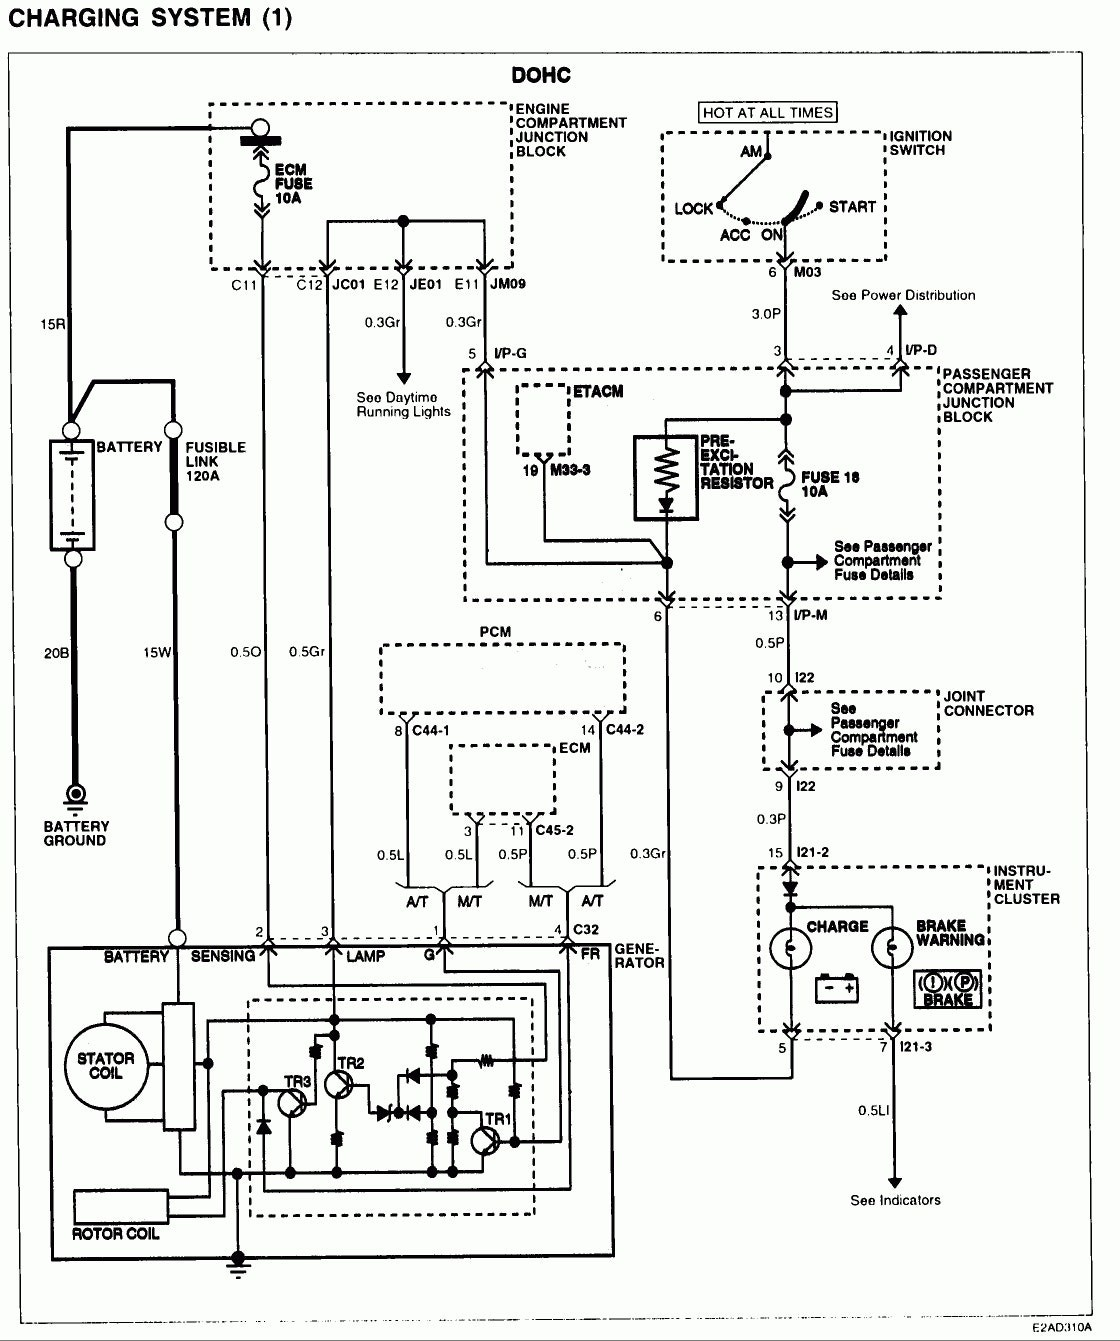 Hyundai Santa Fe Radio Wiring Diagram Awesome Hyundai Santa Fe Parts Diagram Radio Wiring With Template In Latest Of Hyundai Santa Fe Radio Wiring Diagram on 1992 Miata Fuse Box Diagram